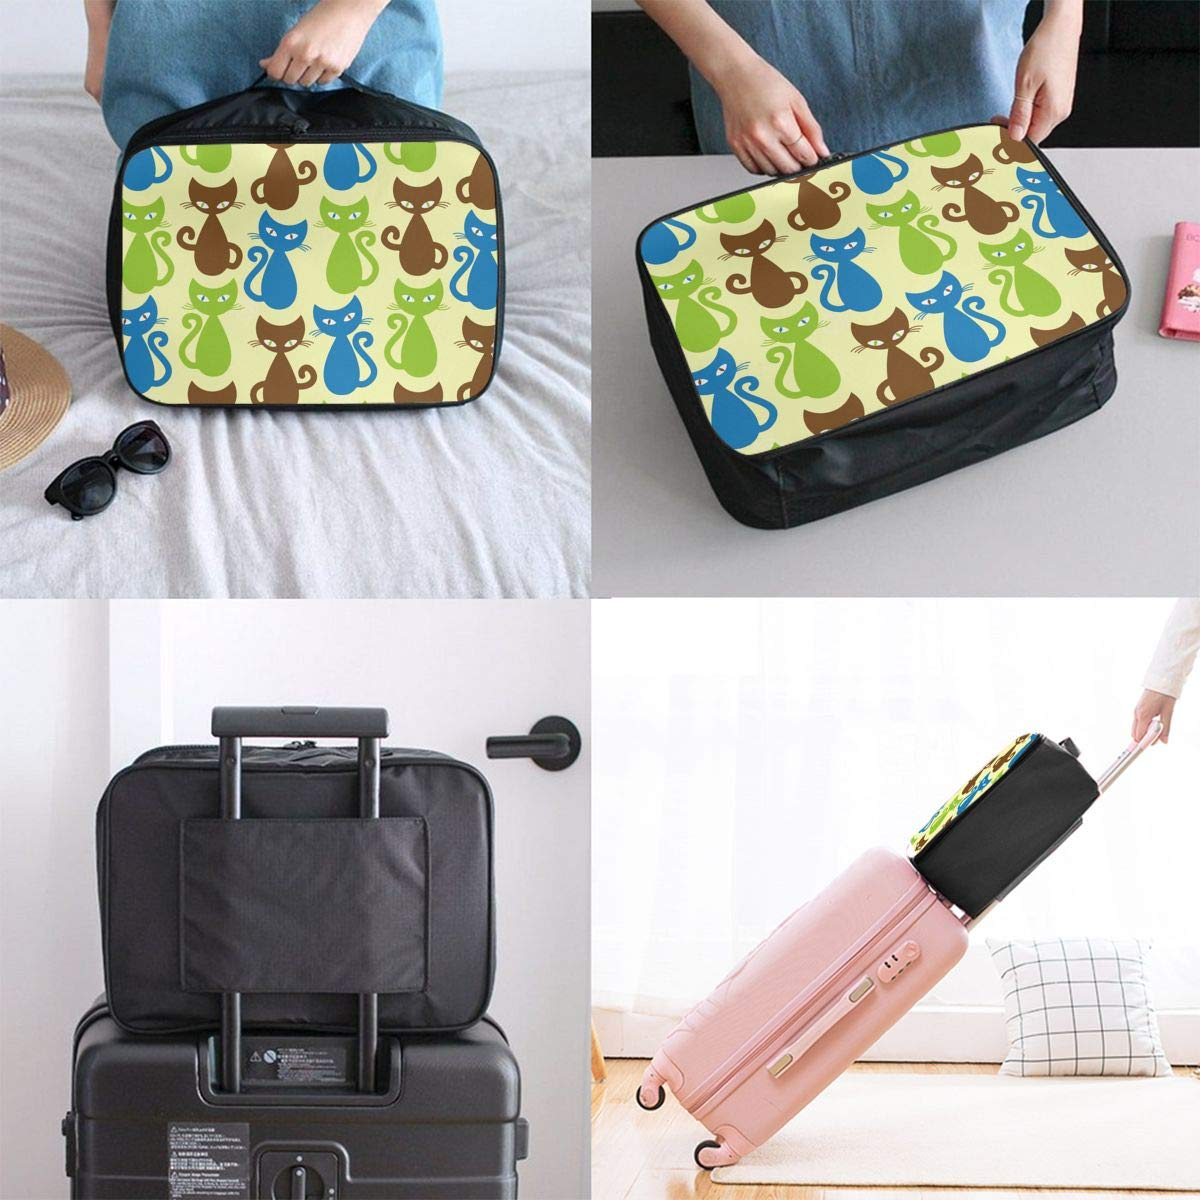 YueLJB Cat Blue Brown Green Lightweight Large Capacity Portable Luggage Bag Travel Duffel Bag Storage Carry Luggage Duffle Tote Bag